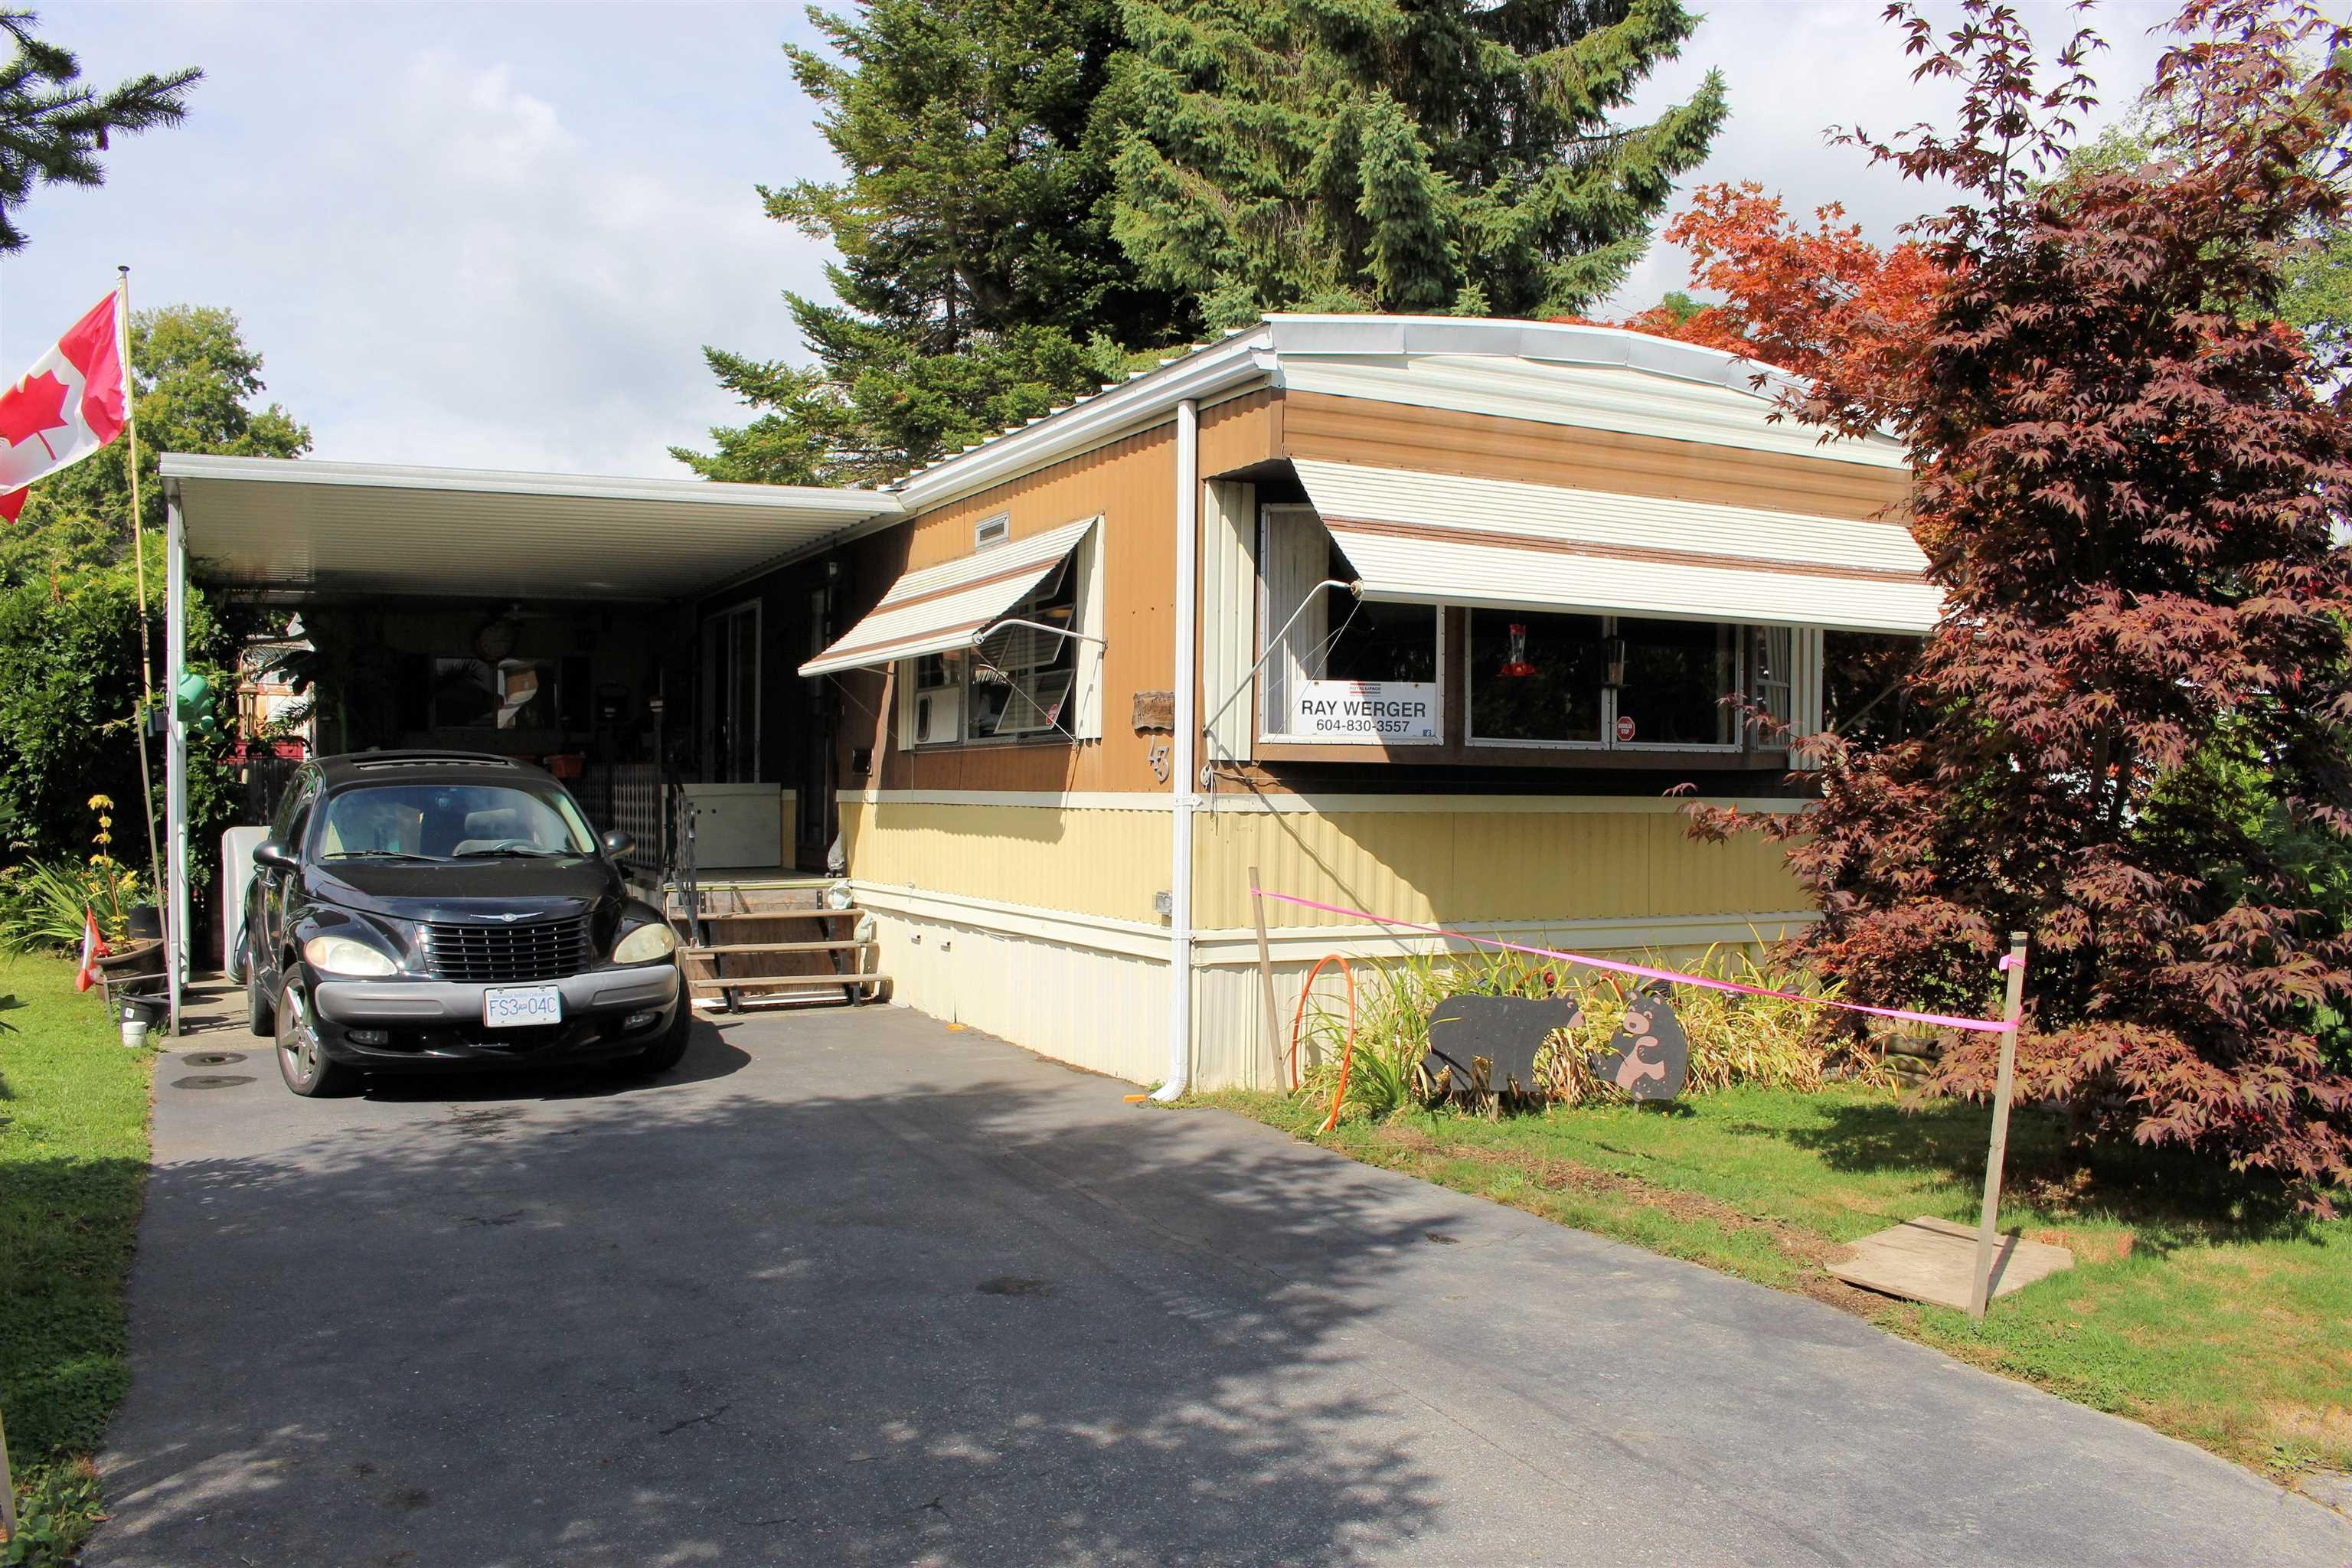 """Main Photo: 43 1840 160 Street in Surrey: King George Corridor Manufactured Home for sale in """"BREAKAWAY BAYS"""" (South Surrey White Rock)  : MLS®# R2612956"""